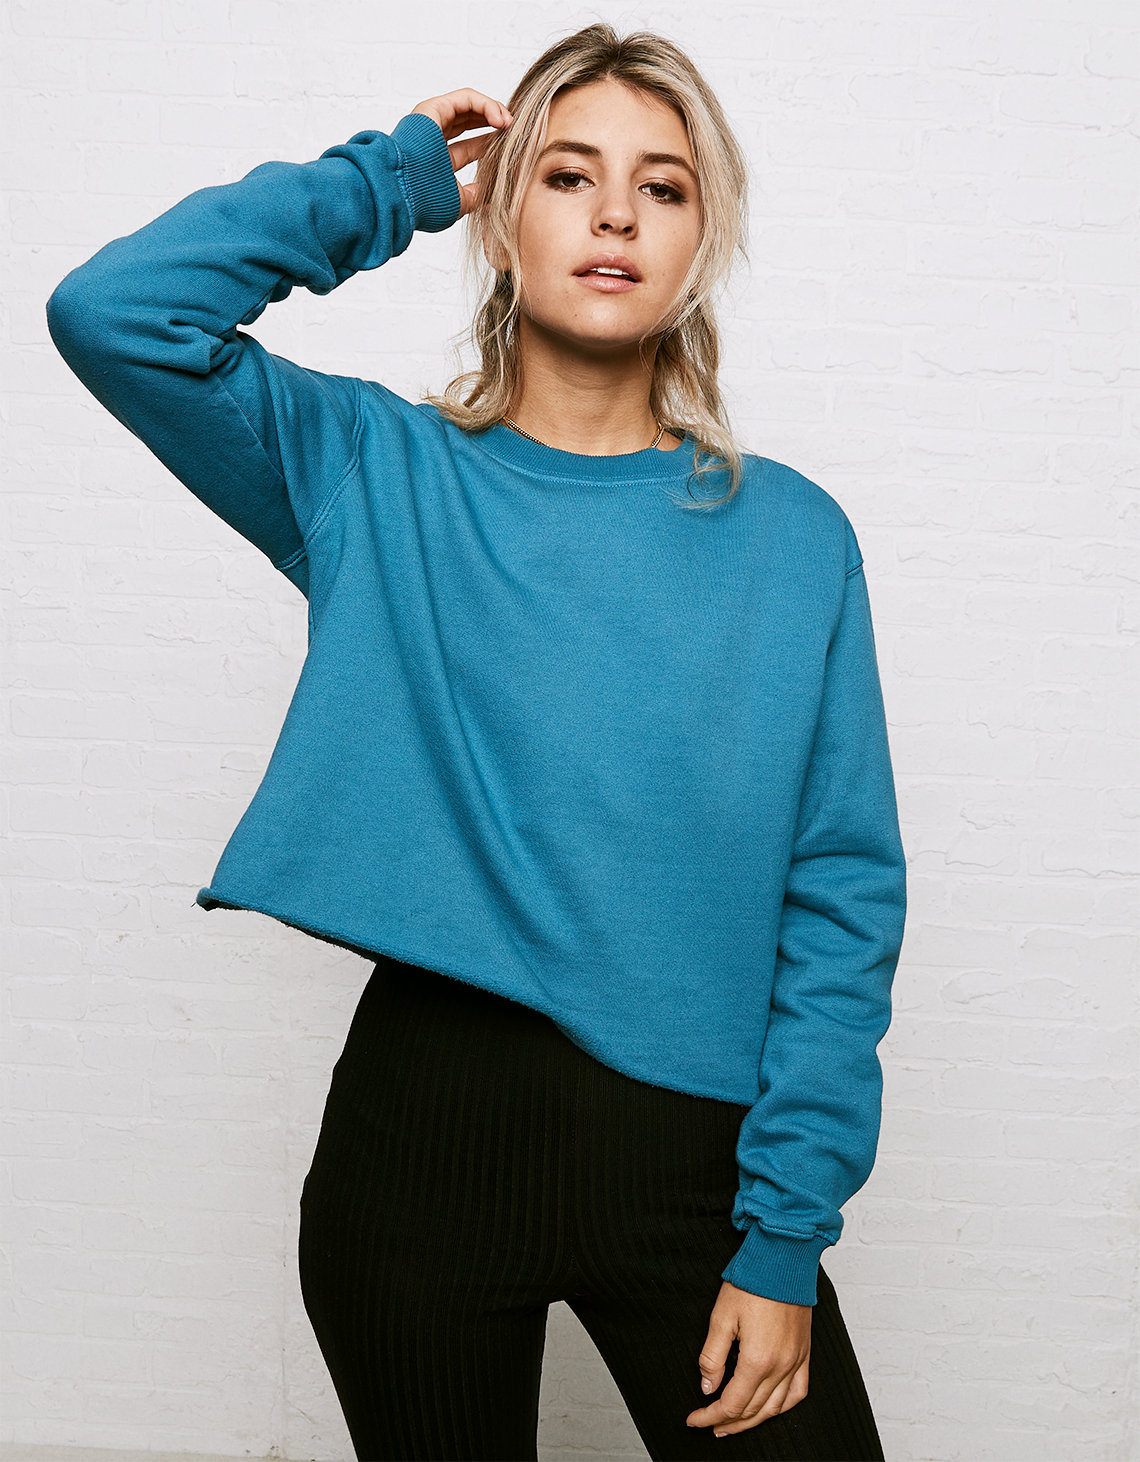 Why Ask Neck Crew Cropped Teal Sweatshirt Eagle Don't American xFPqw5CFd